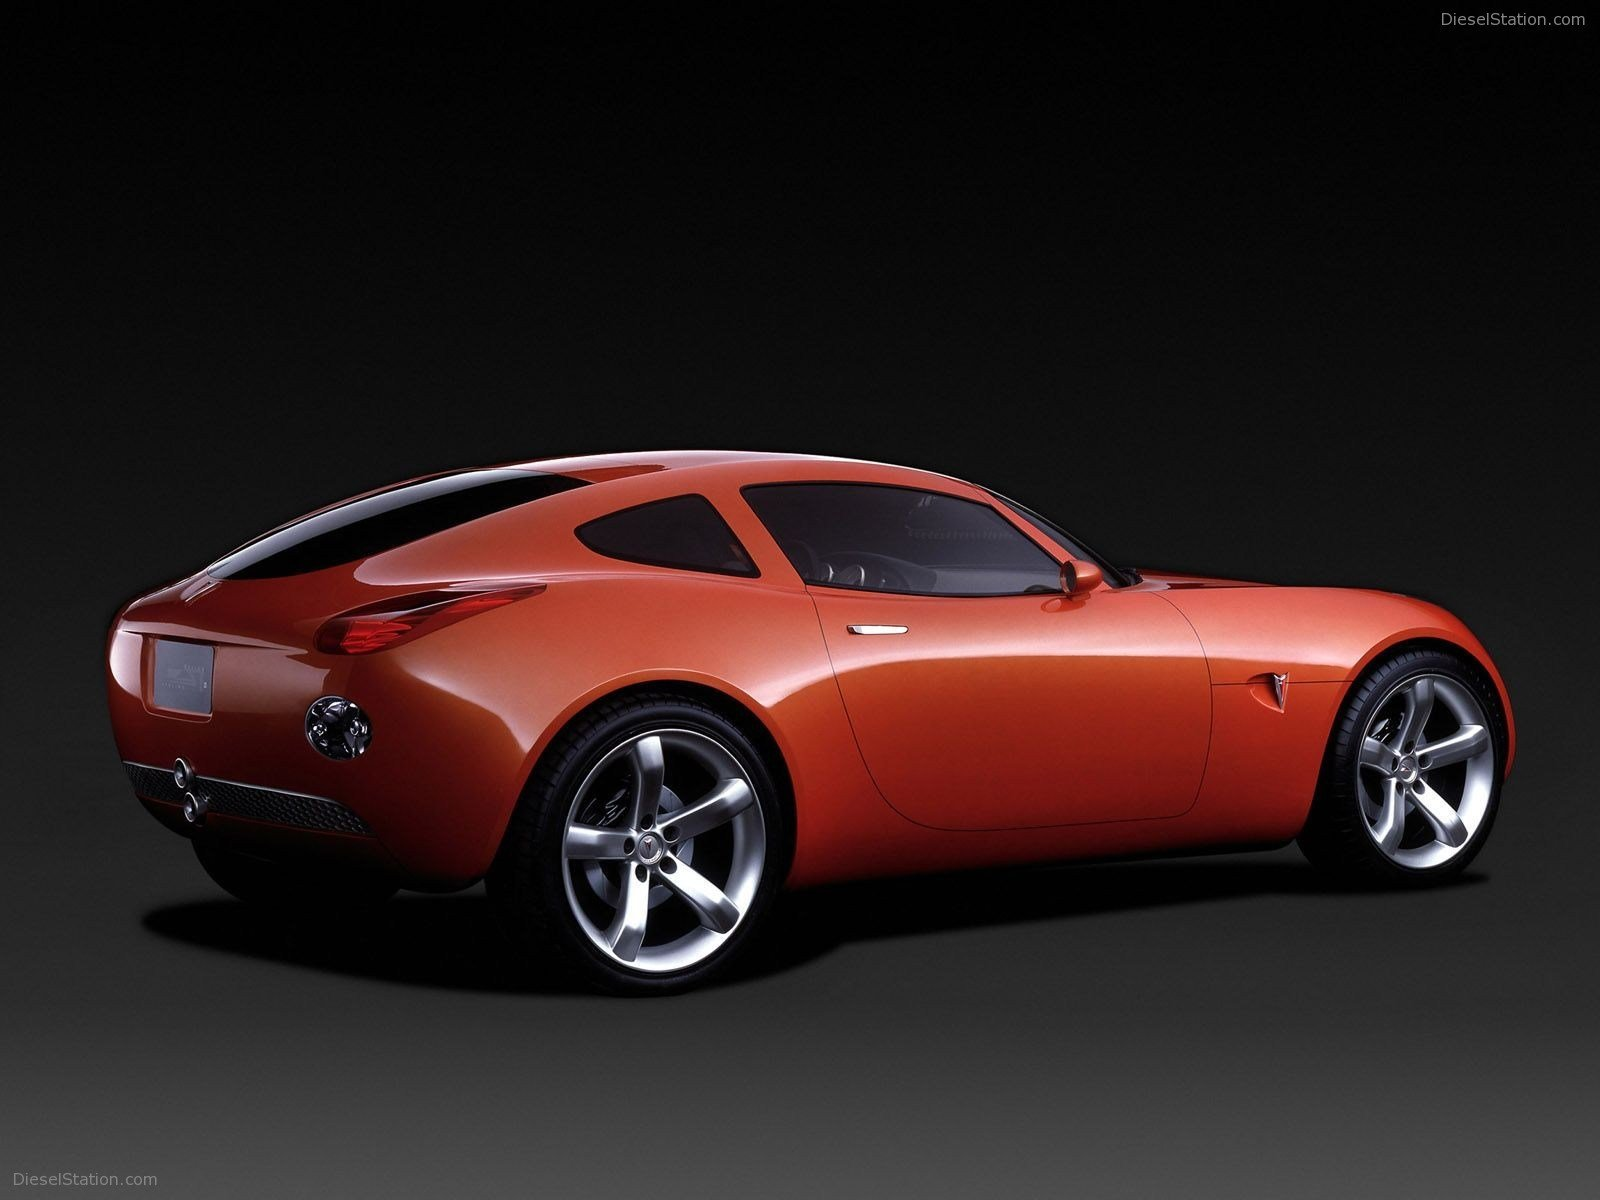 New Pontiac Solstice Exotic Car Photo 011 Of 18 Diesel Station On This Month